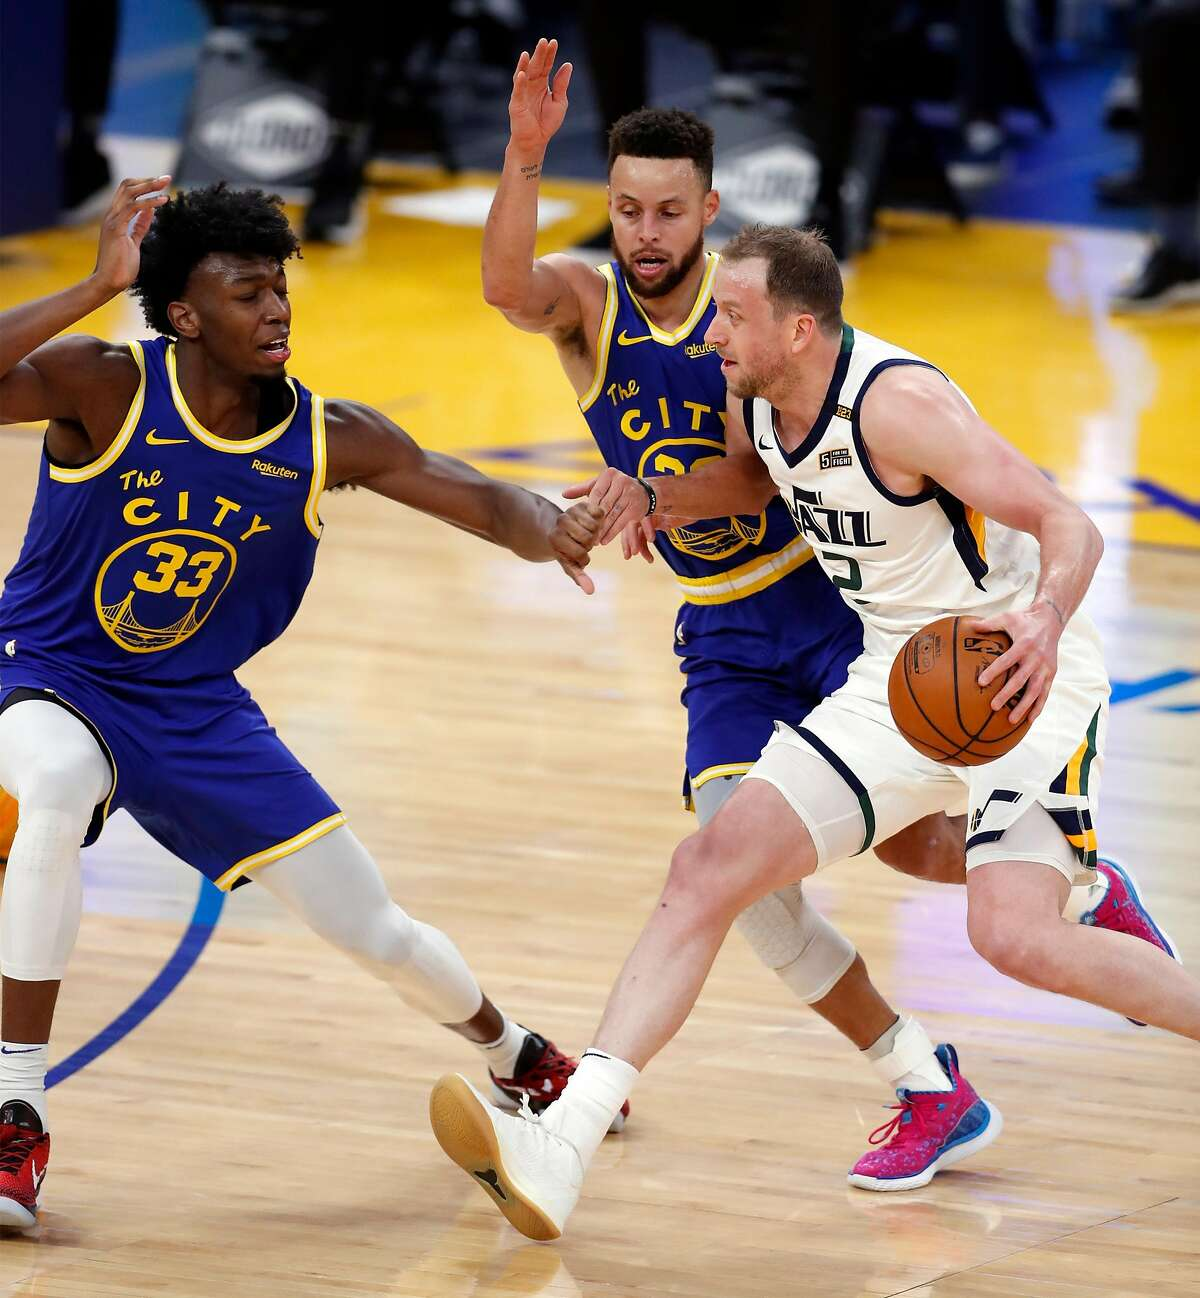 Golden State Warriors' James Wiseman and Stephen Curry guard Utah Jazz' Joe Ingles in 1st quarter during NBA game at Chase Center in San Francisco, Calif., on Sunday, March 14, 2021.